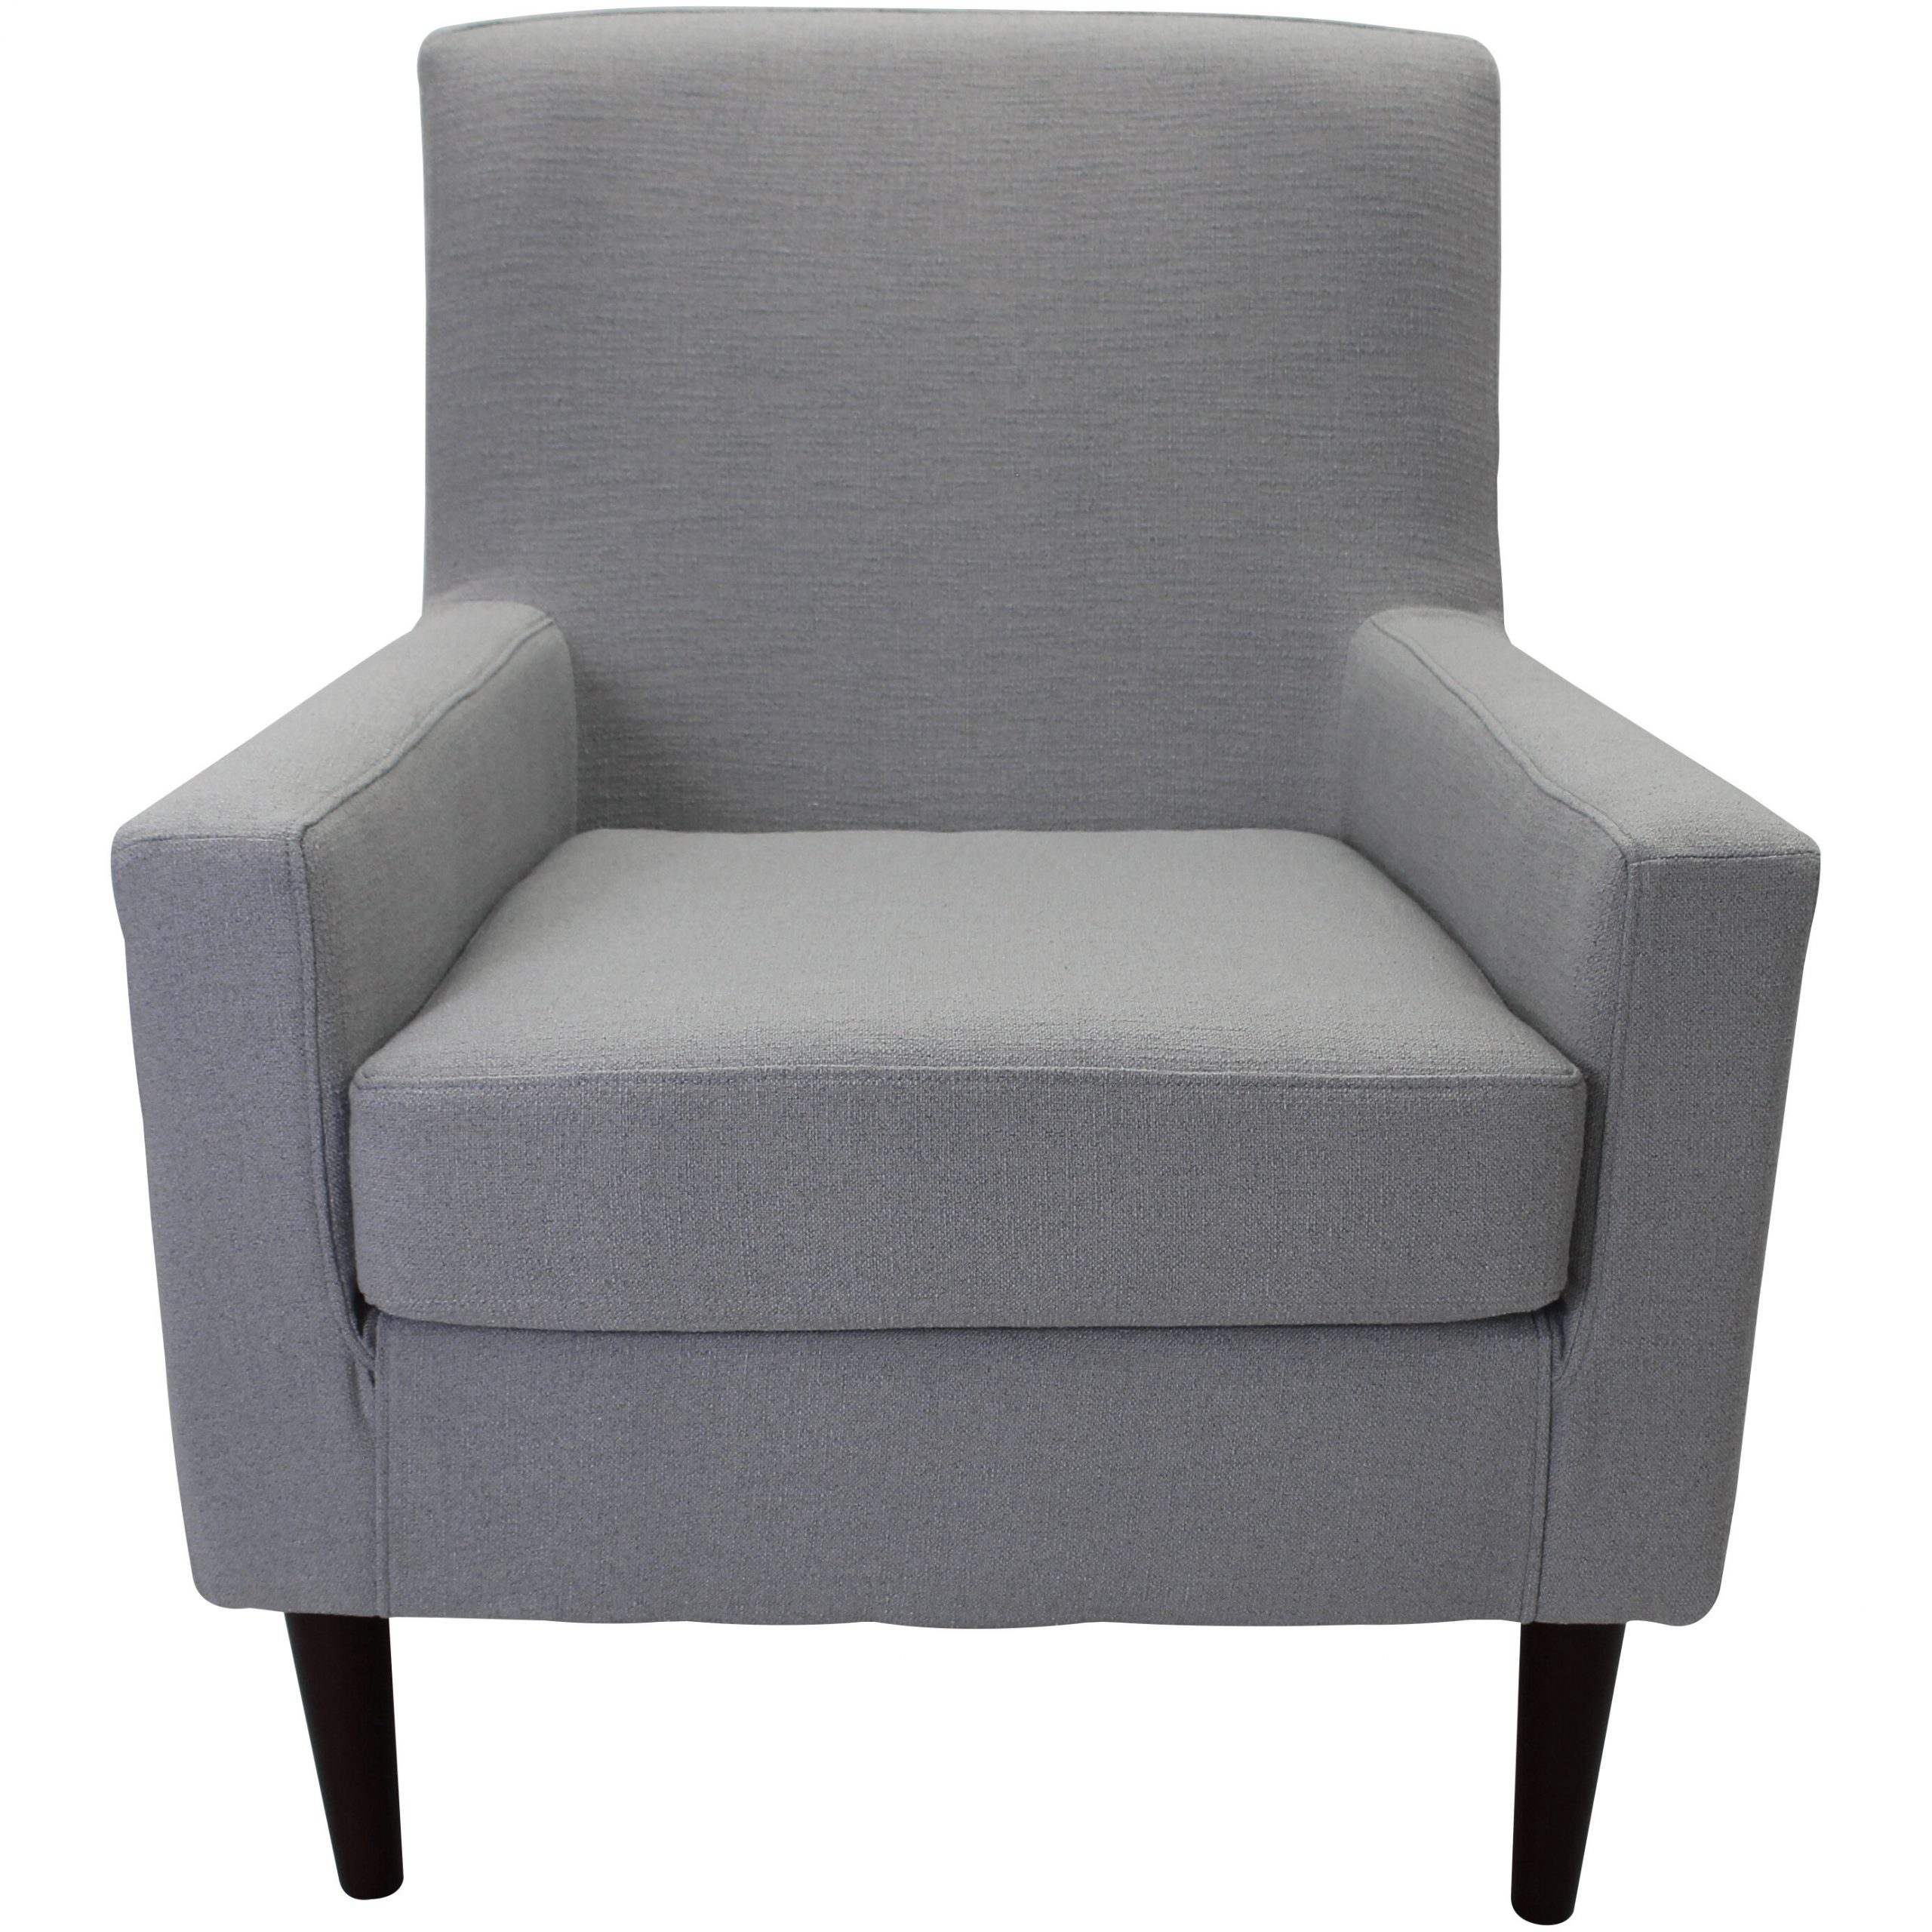 Draco Armchair Intended For Draco Armchairs (View 3 of 15)